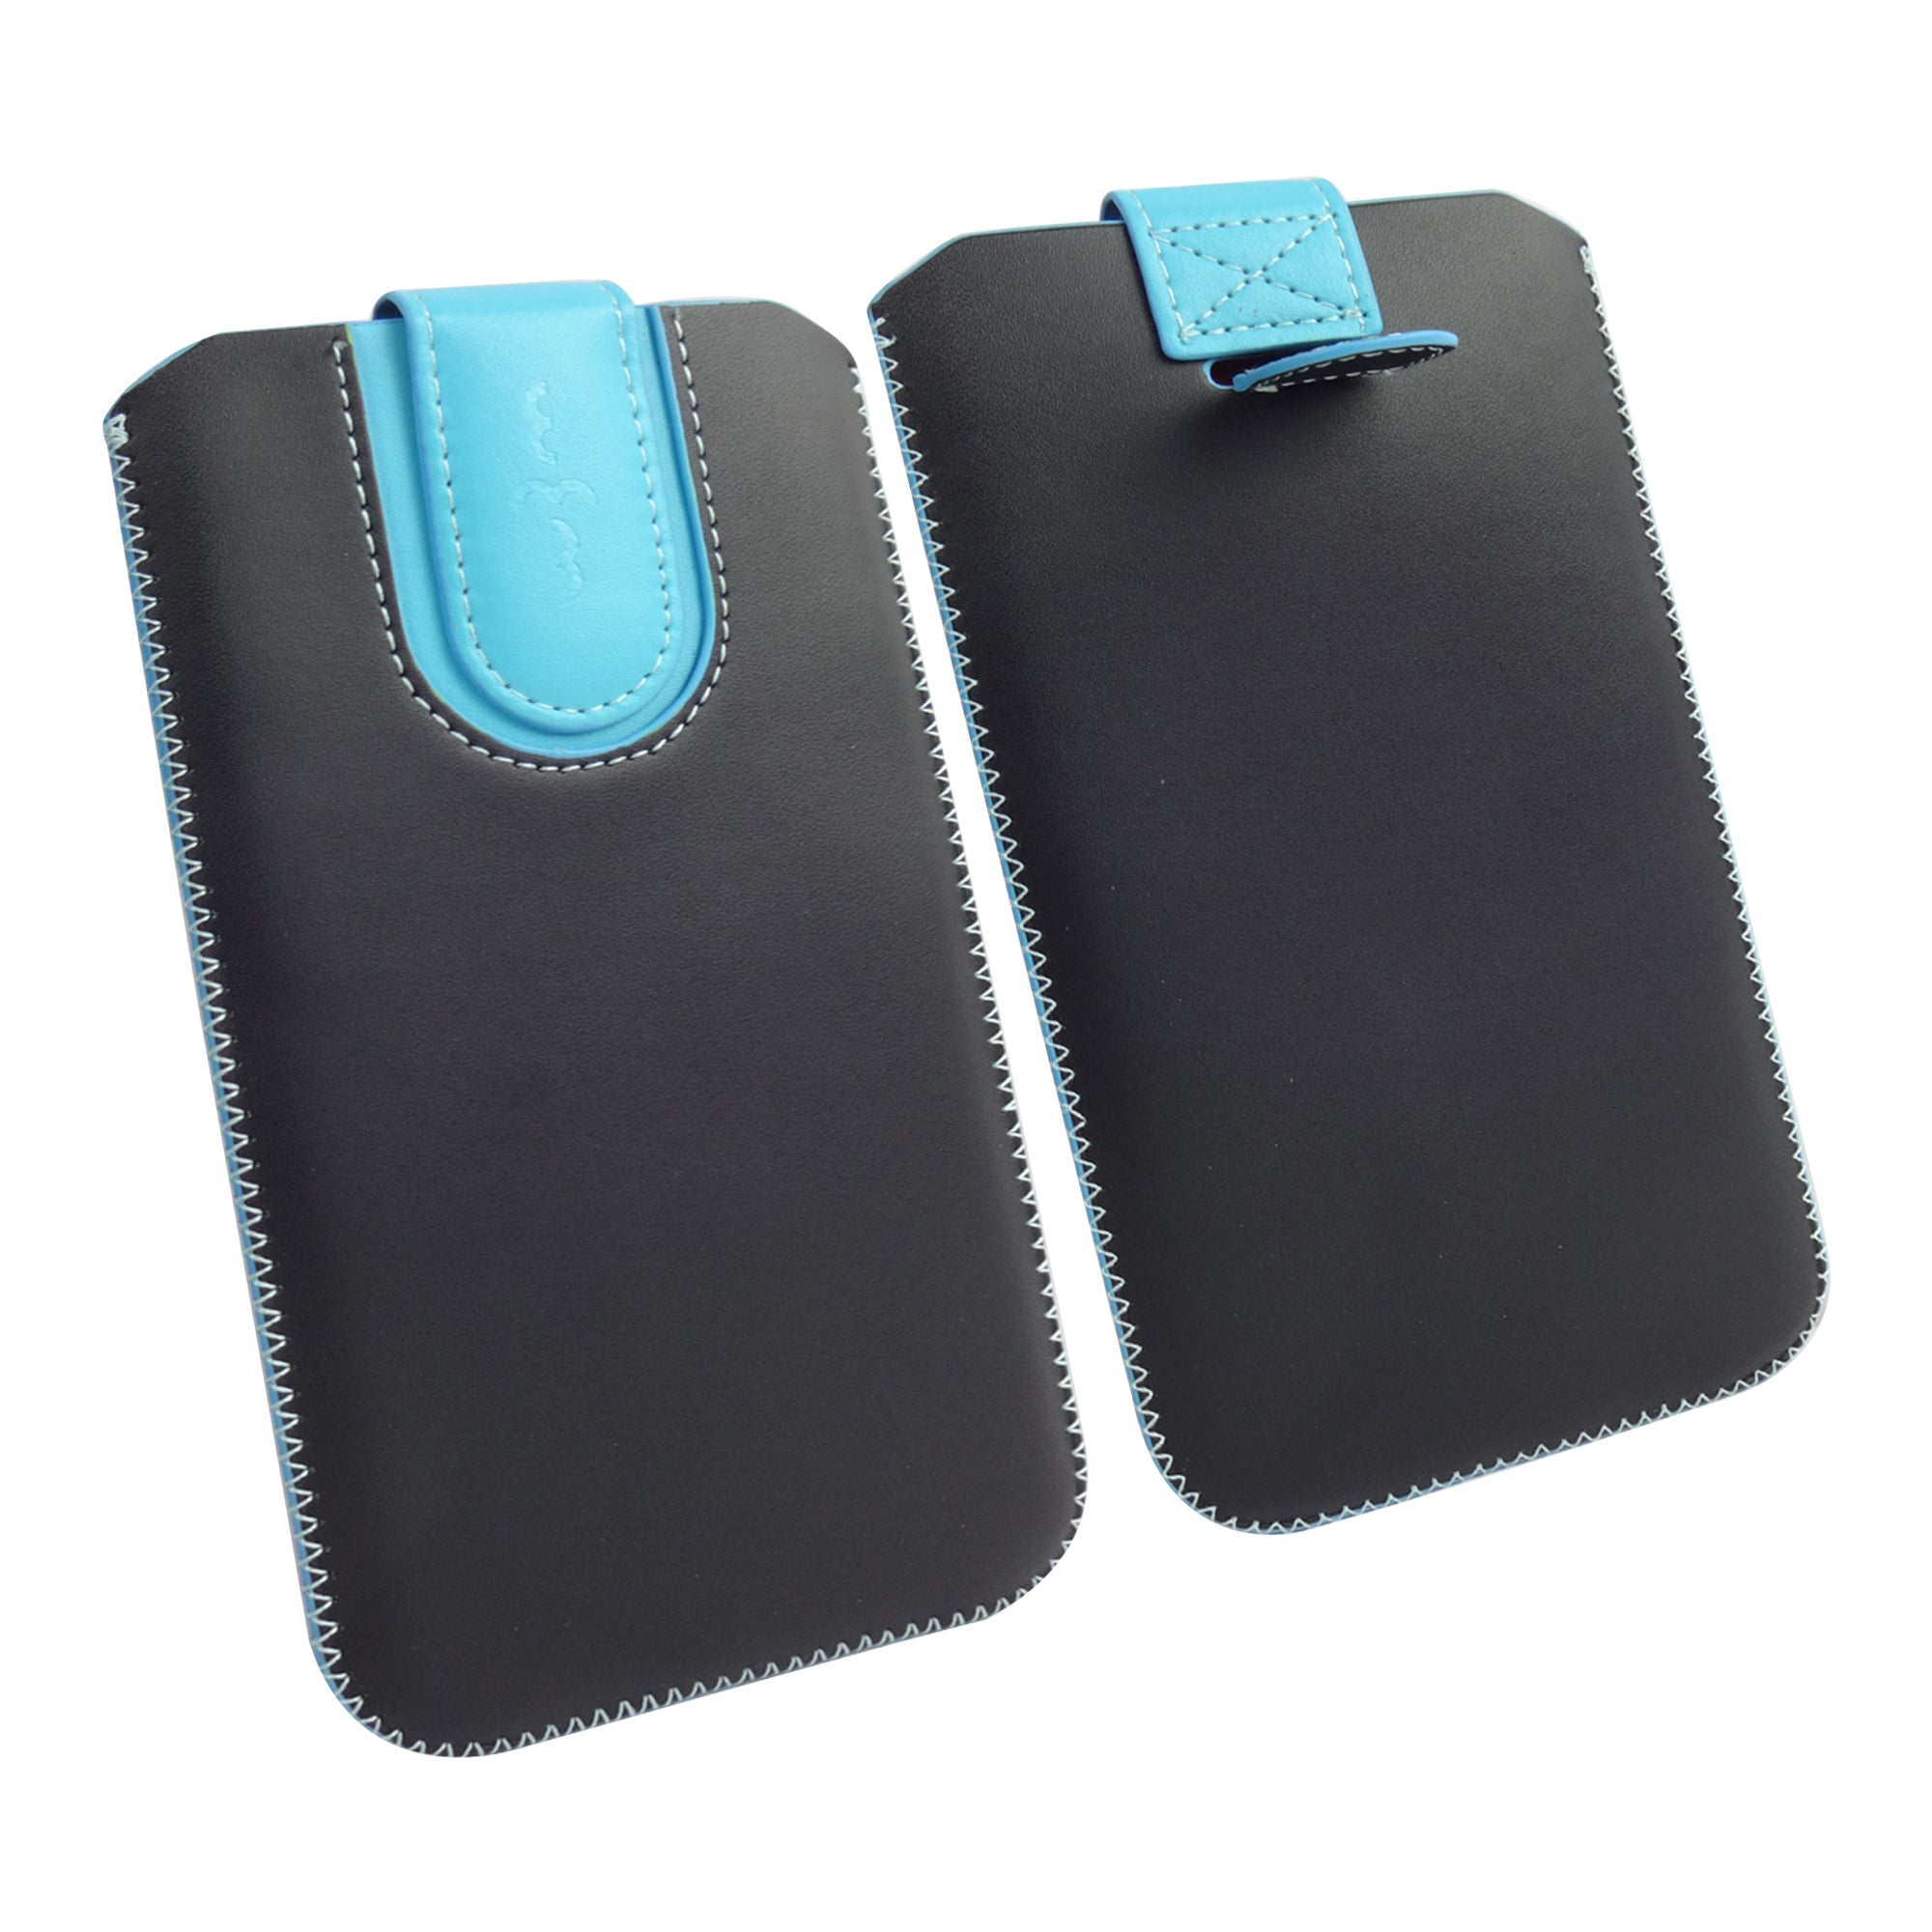 Universal Phone Pouch - Black Blue Plain